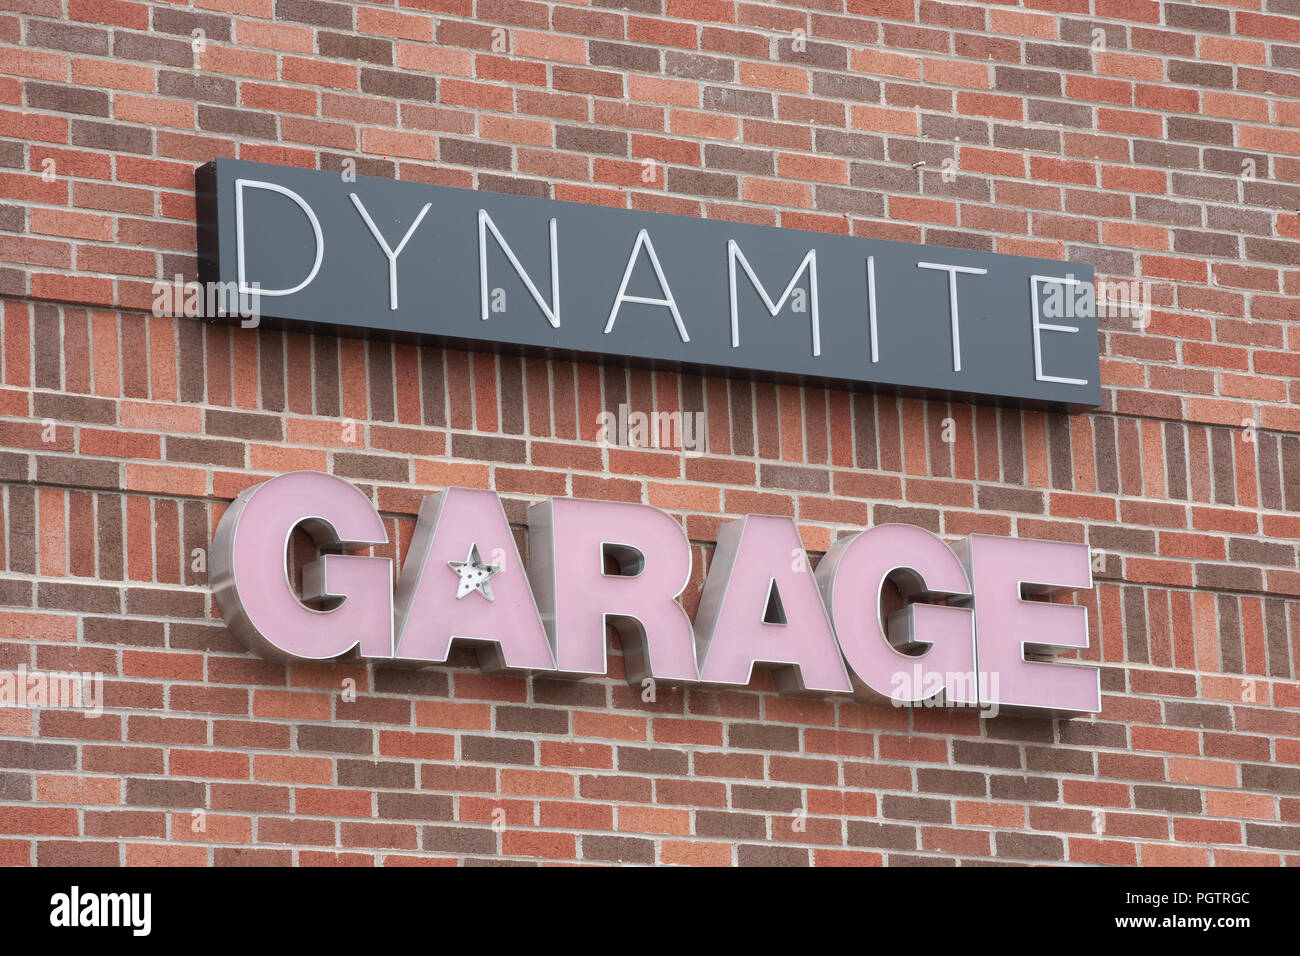 Dartmouth Canada July 24 2016 Dynamite Garage Clothing Store